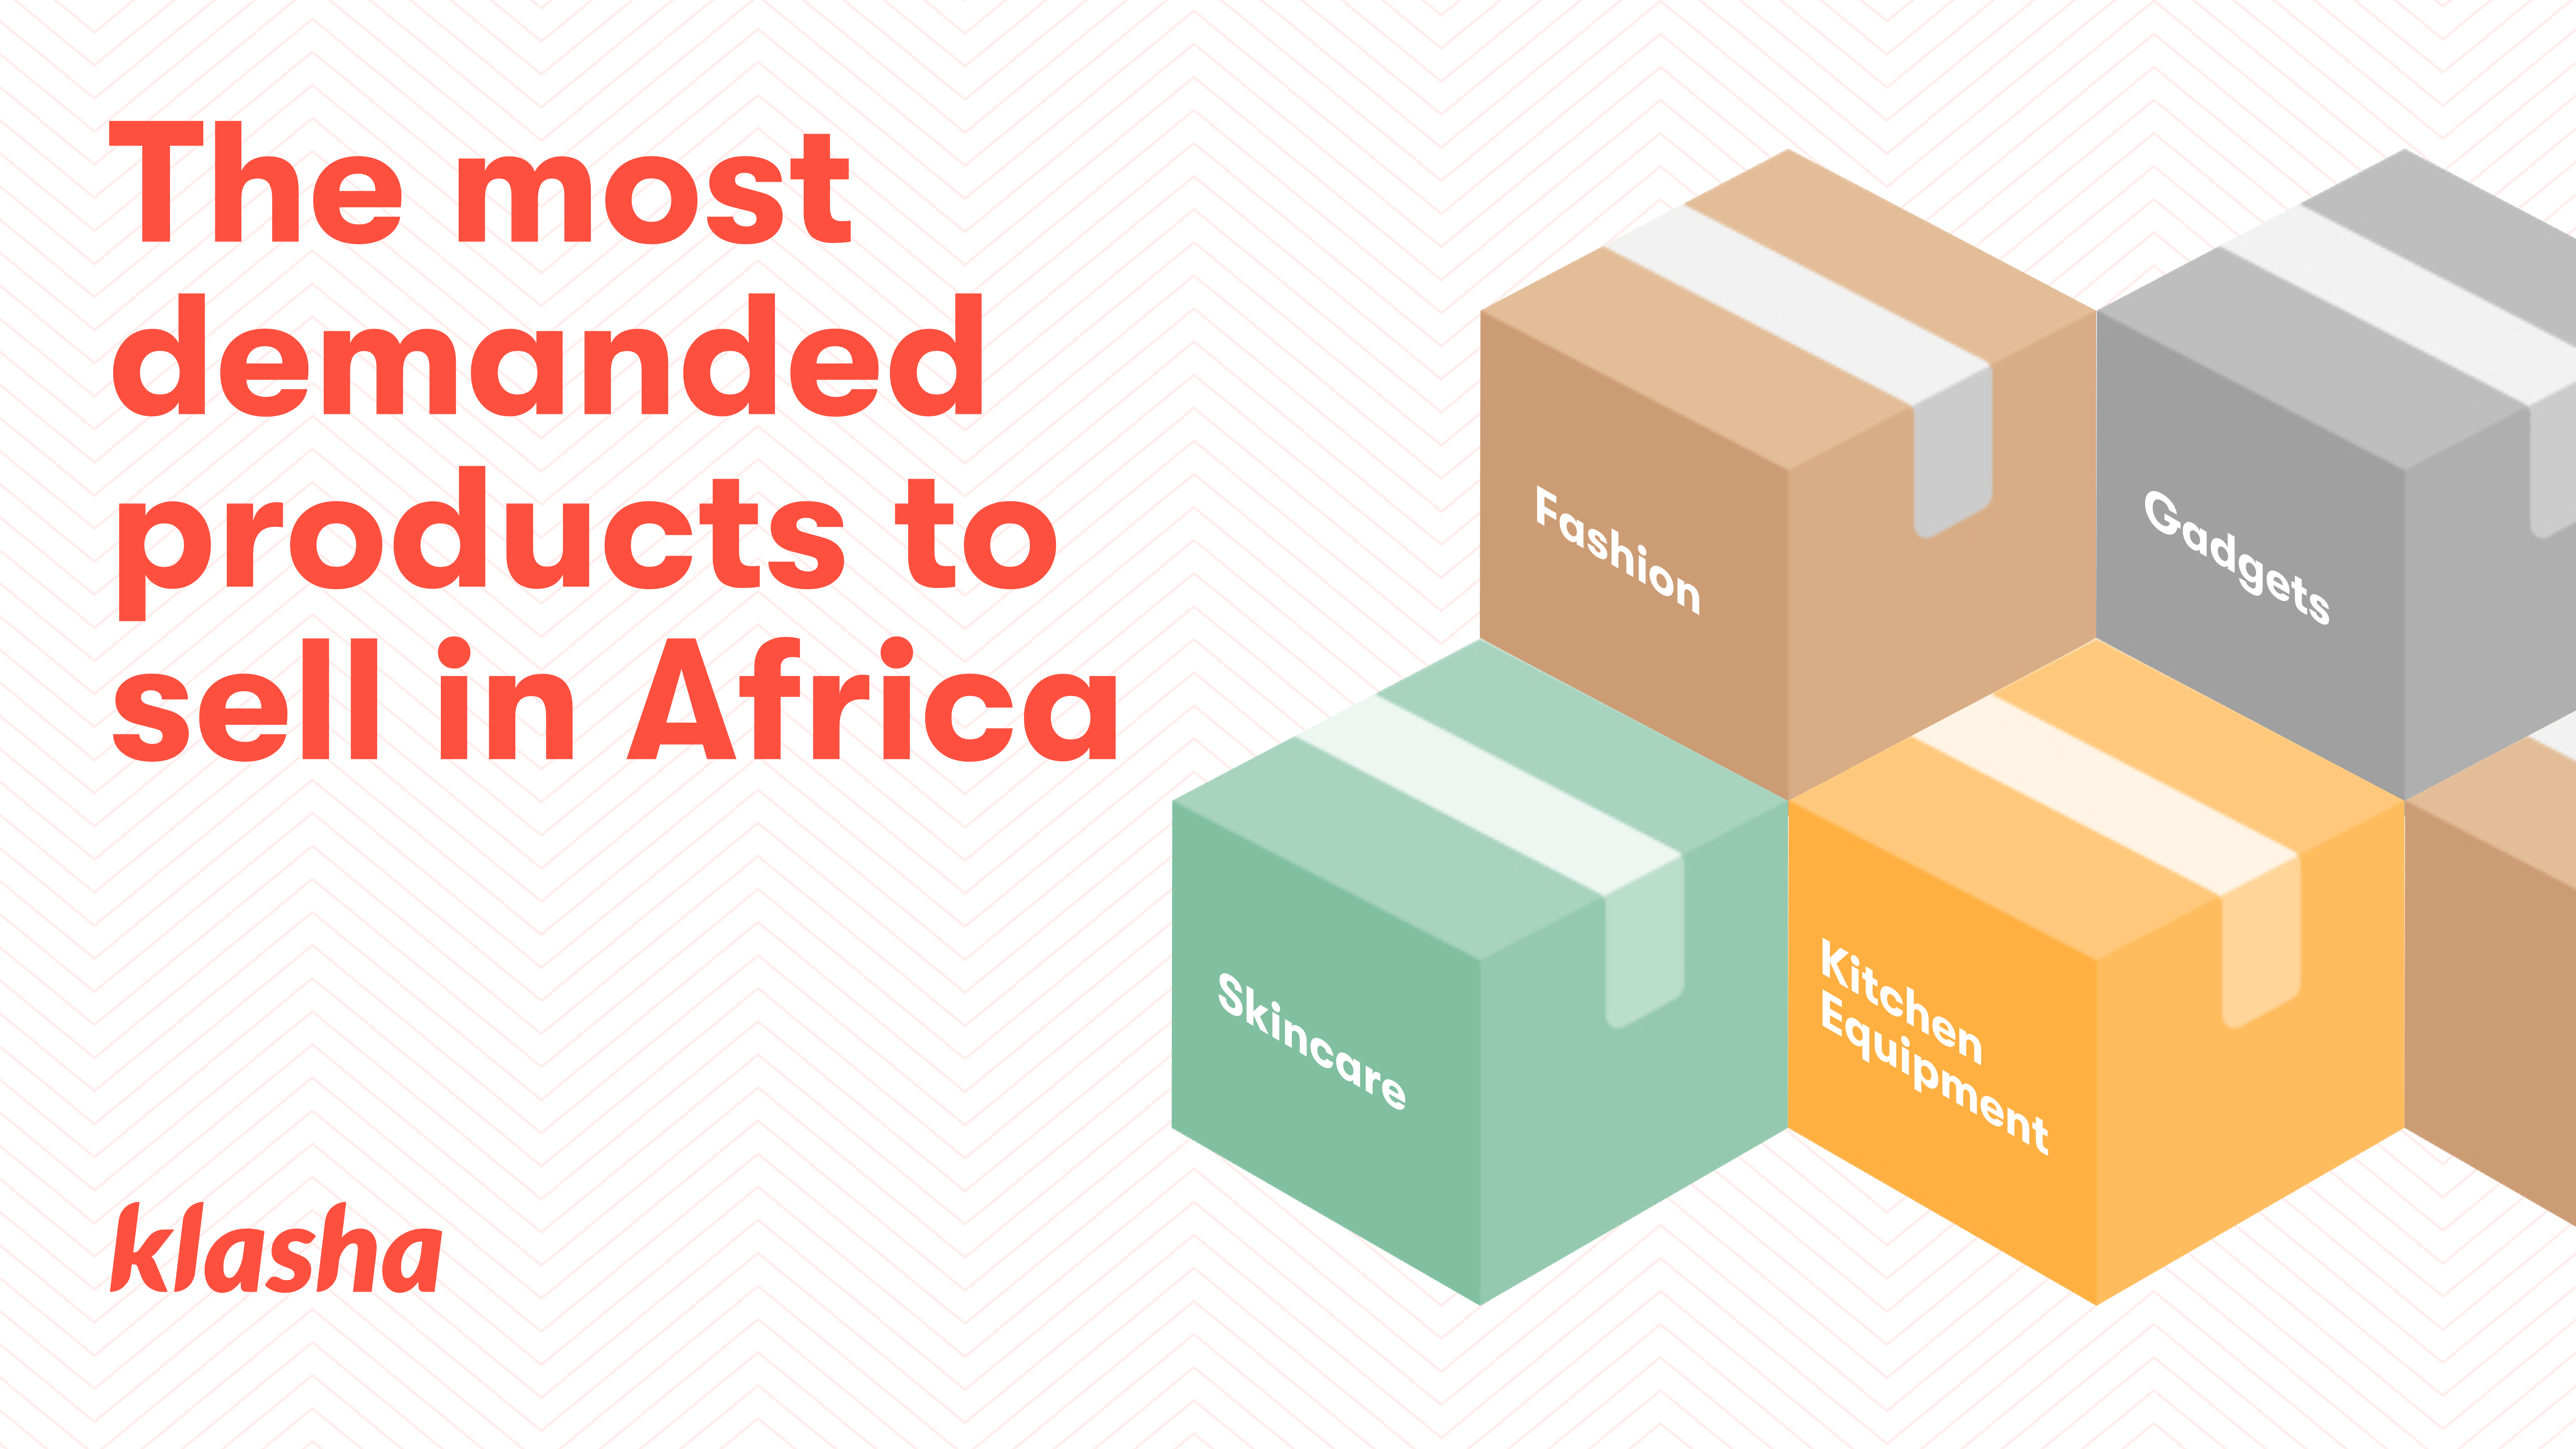 The most demanded products to sell in Africa